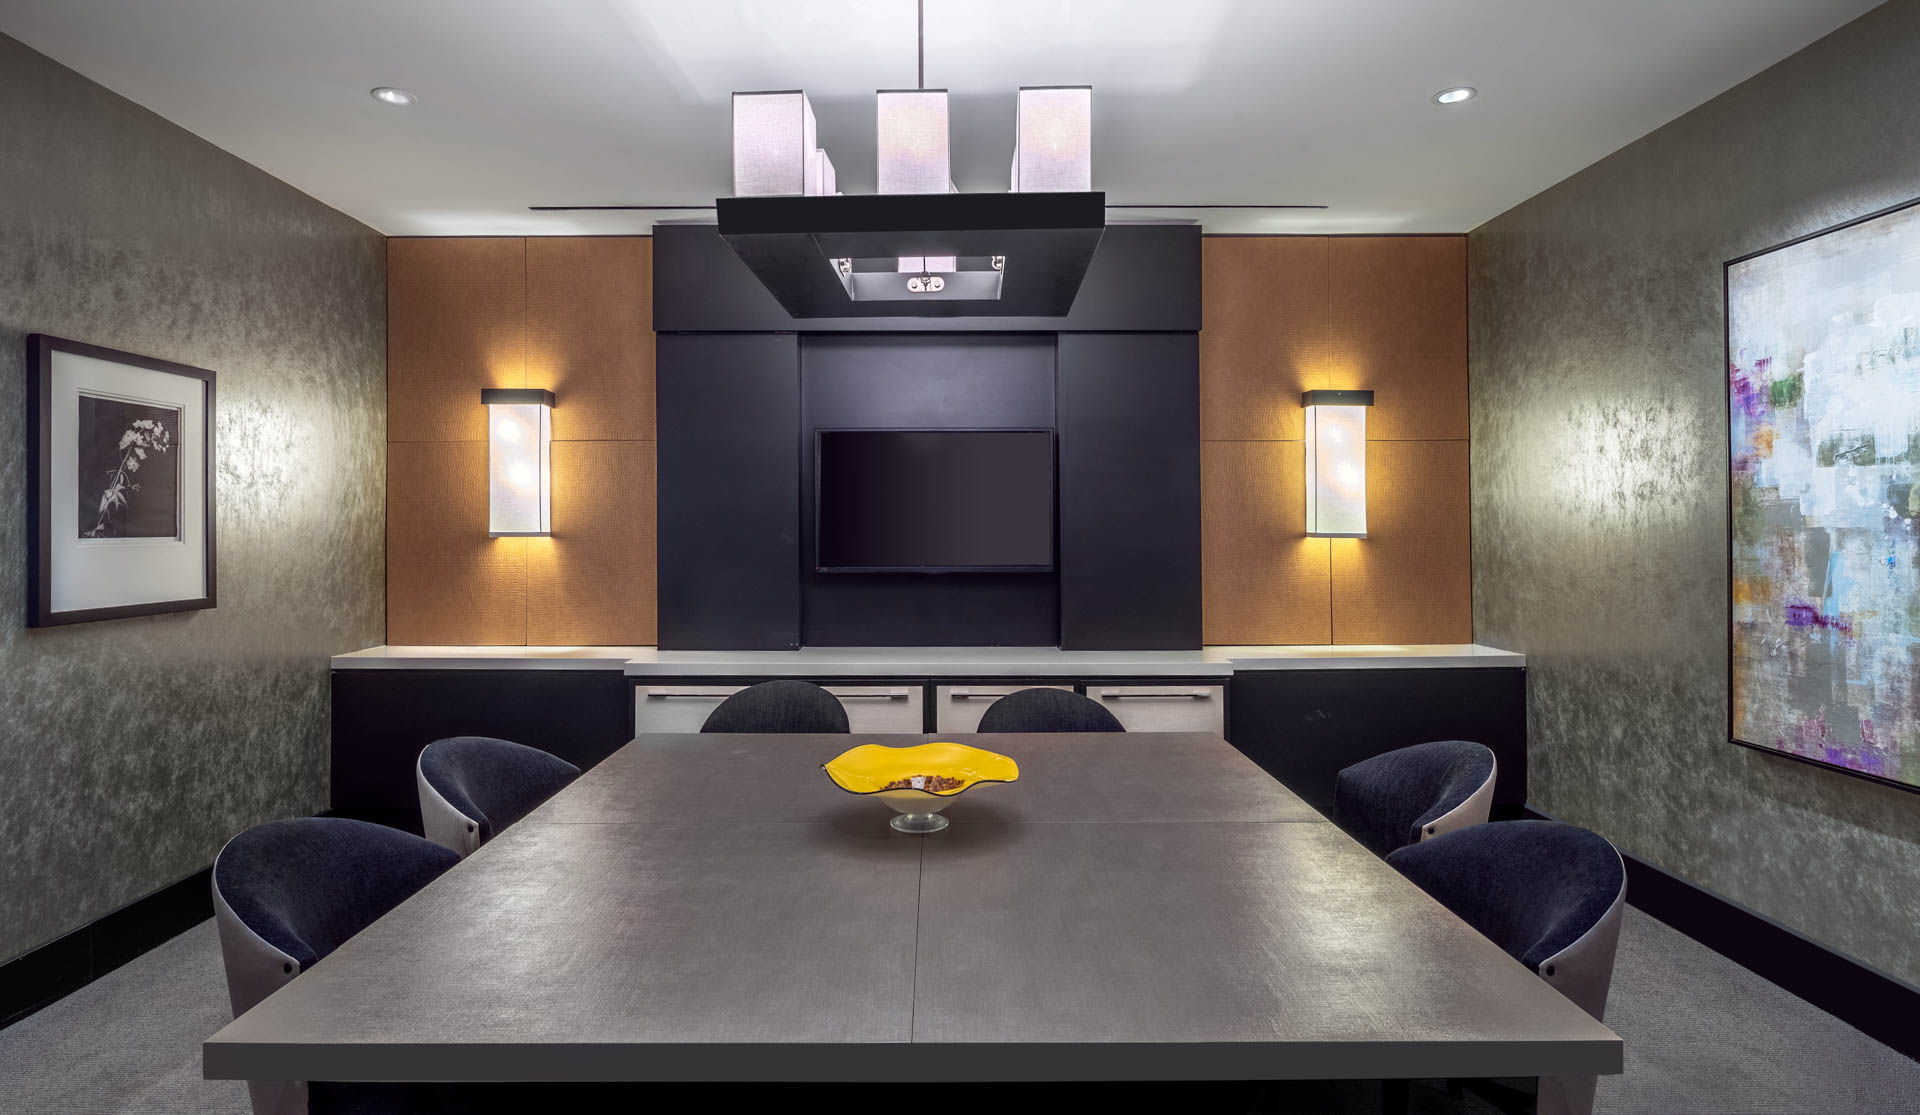 New meeting room with large conference table and TV